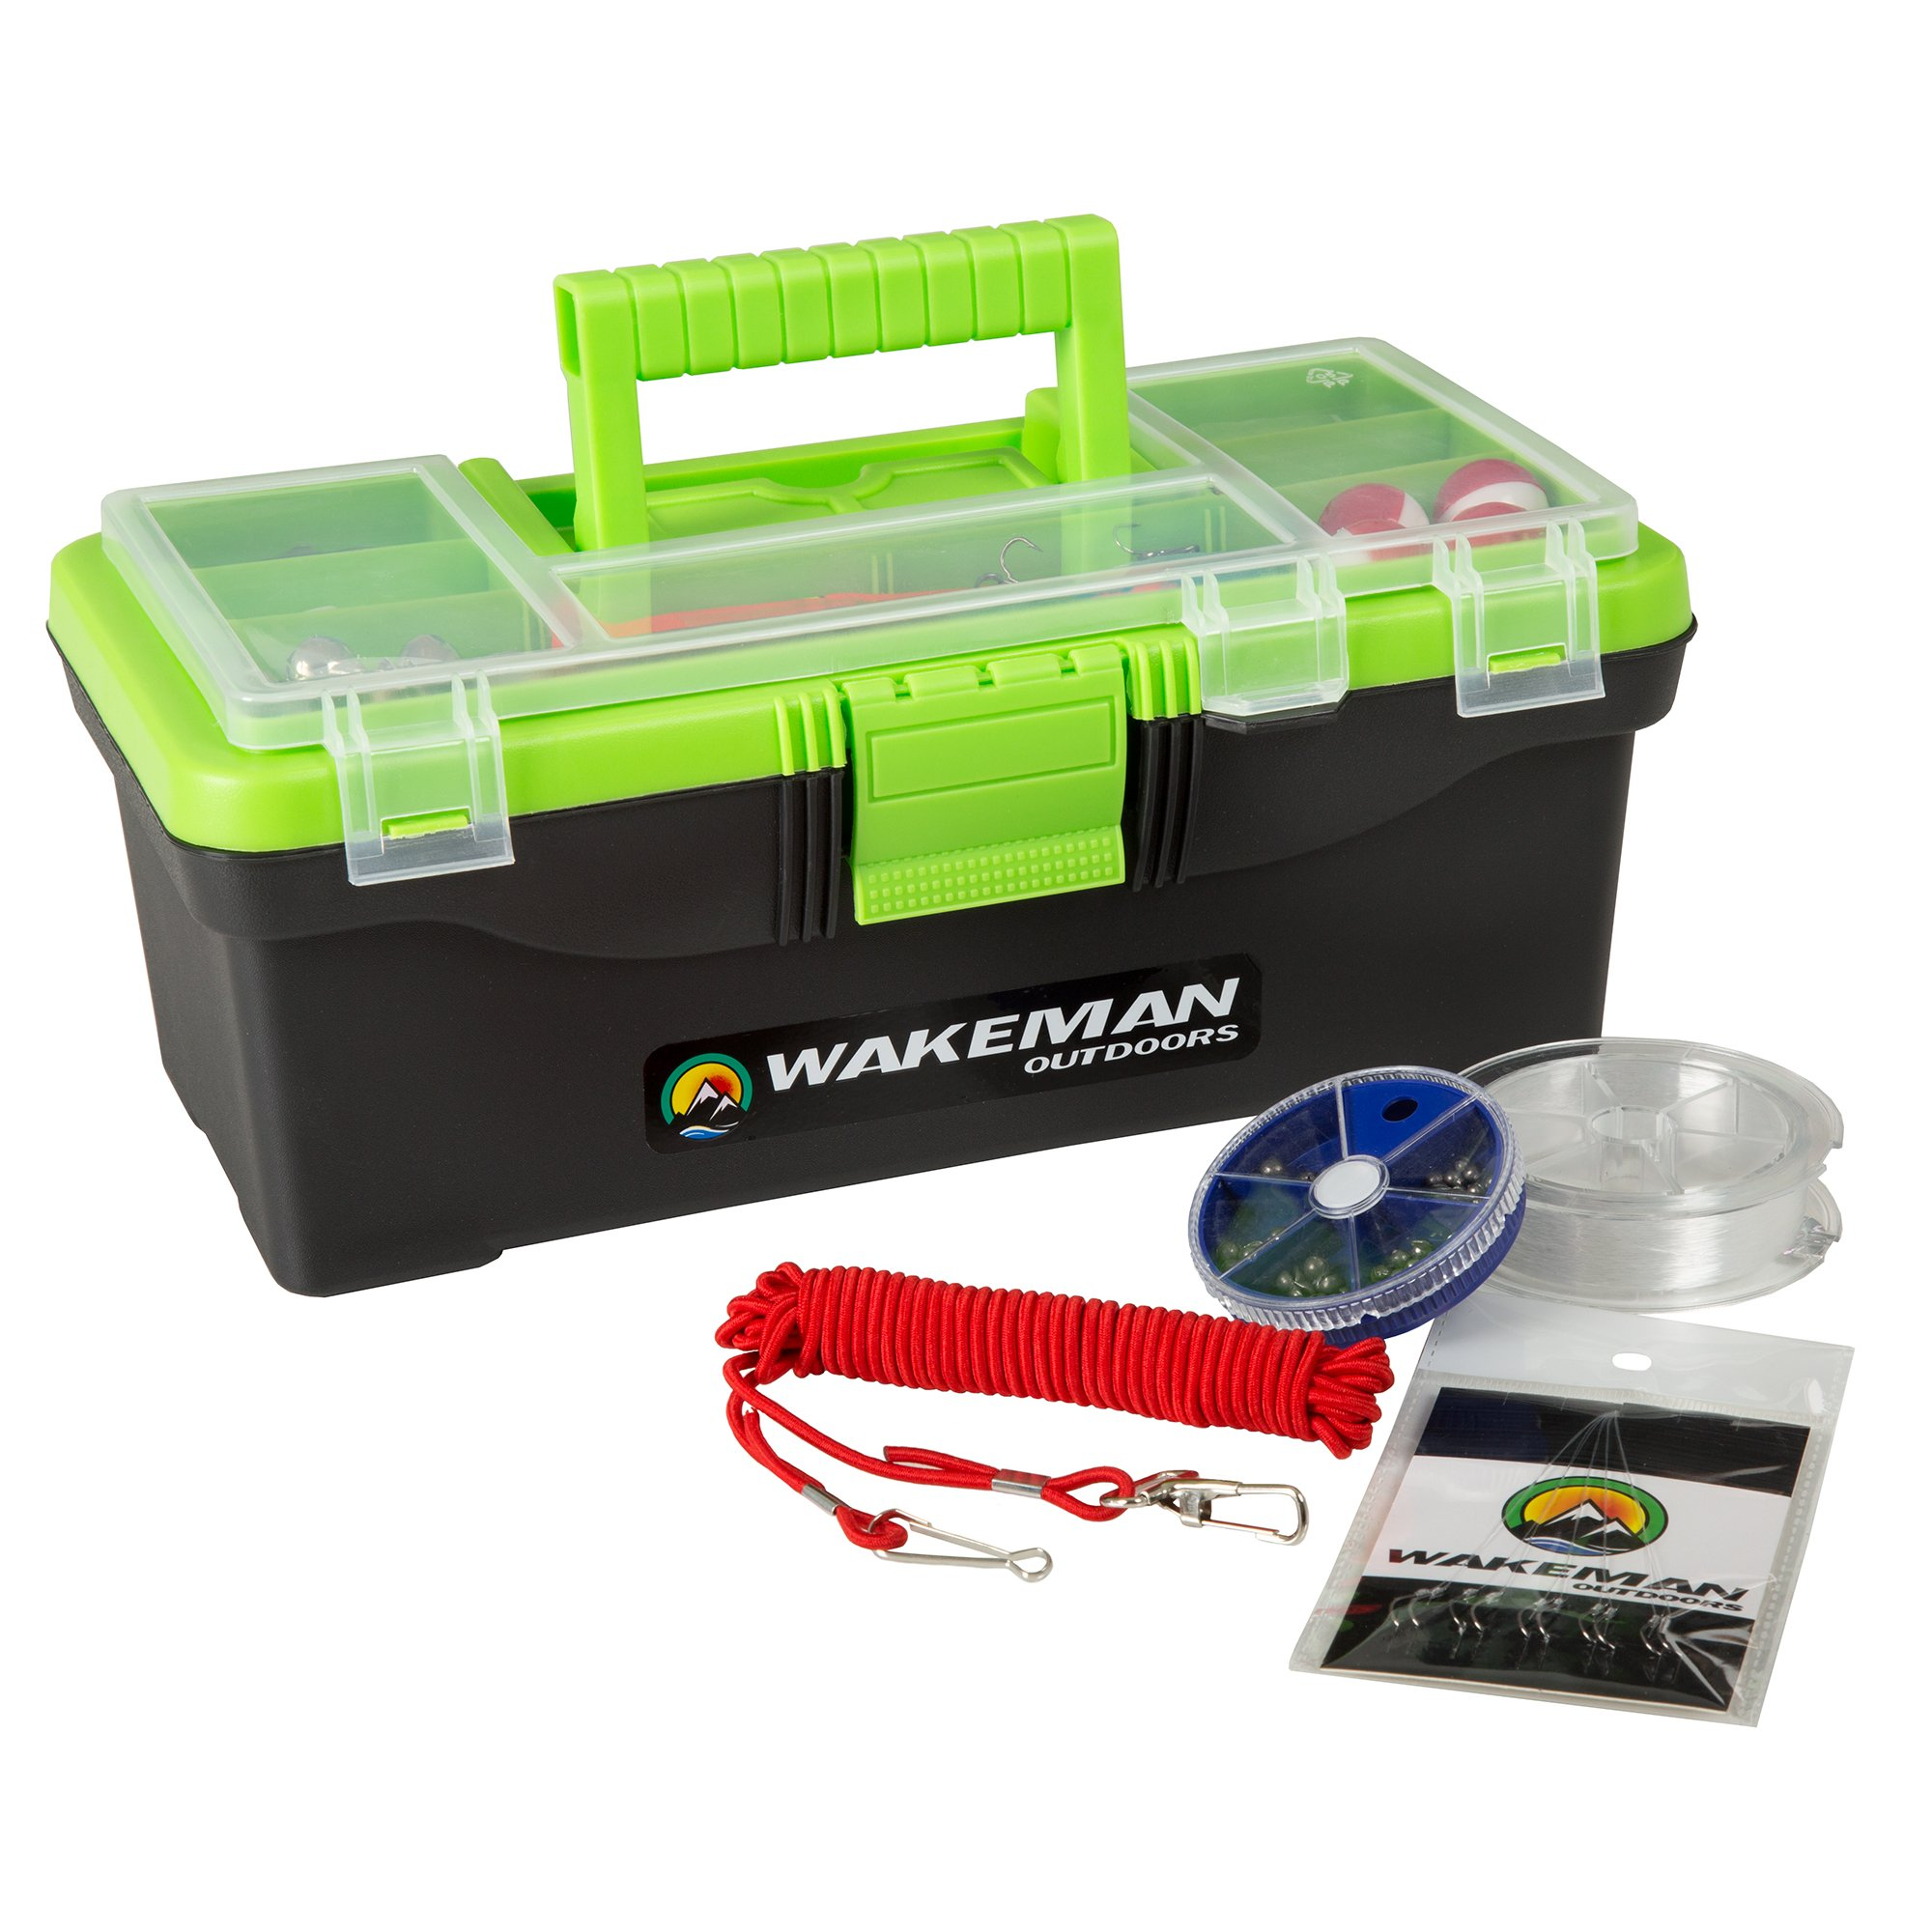 Wakeman Fishing Single Tray Tackle Box- 55 Piece Tackle Gear Kit Includes Sinkers, Hooks Lures Bobbers Swivels and Fishing Line Outdoors Lime Green